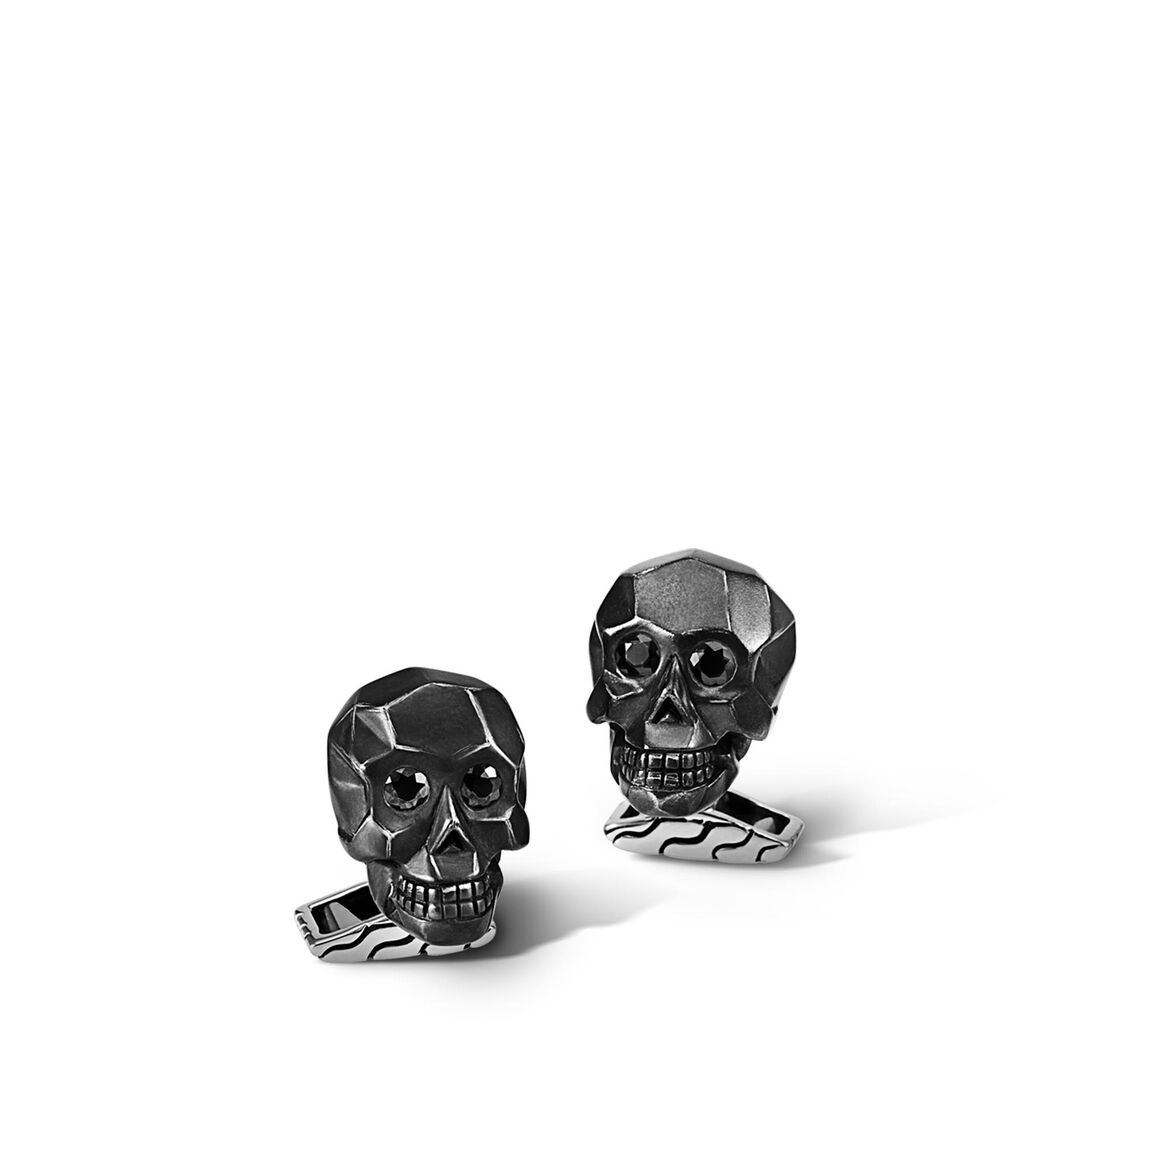 Classic Chain Skull Cufflinks in Ruthenium Silver, Gemstone